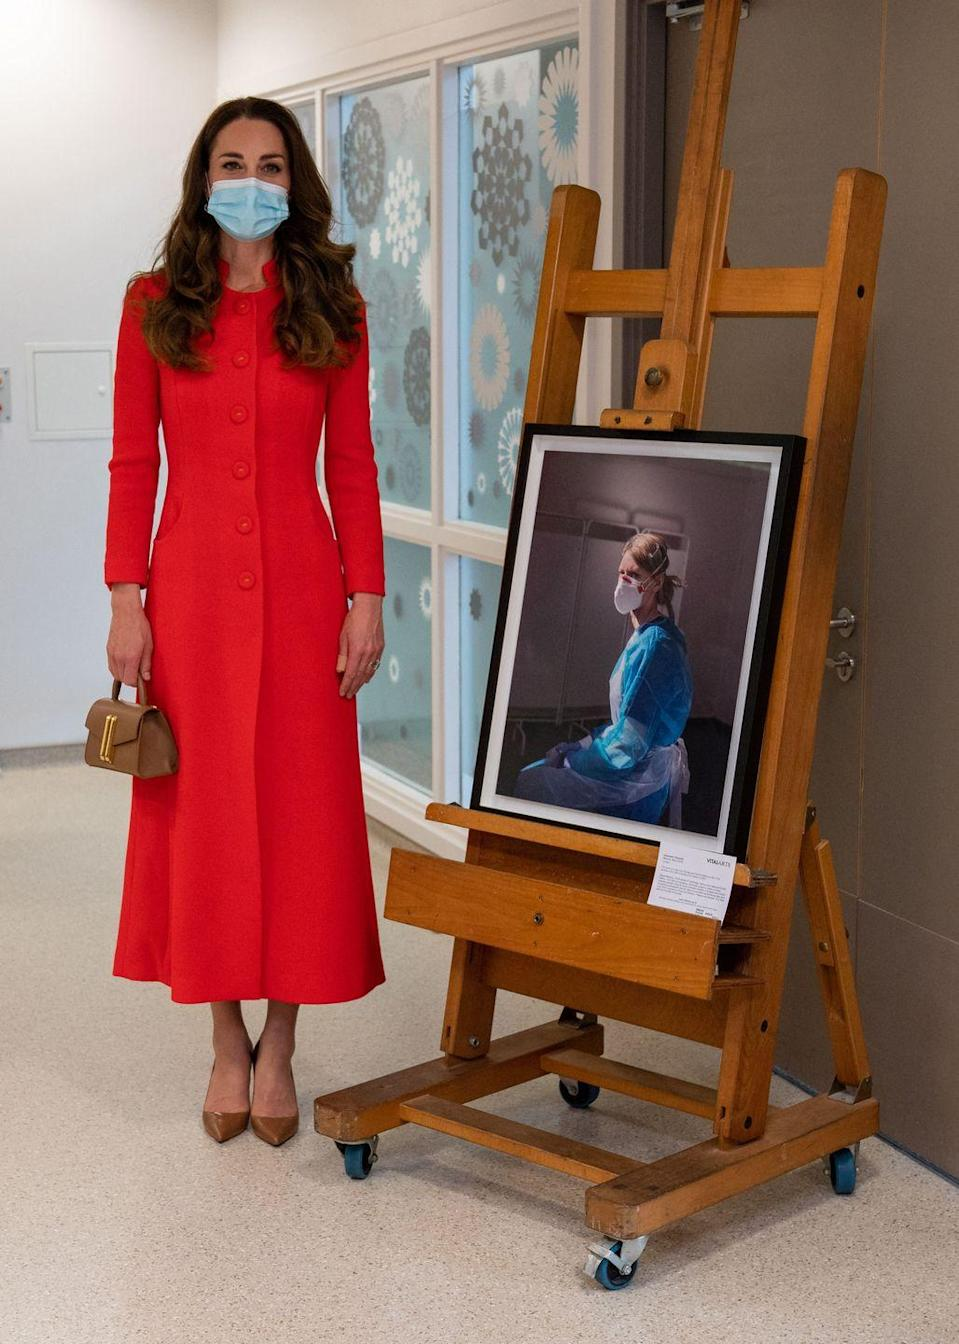 """<p>The Duchess of Cambridge wore a red-orange double wool crepe coat from brand <a href=""""https://eponinelondon.com/"""" rel=""""nofollow noopener"""" target=""""_blank"""" data-ylk=""""slk:Eponine London"""" class=""""link rapid-noclick-resp"""">Eponine London</a> to mark the <a href=""""https://www.townandcountrymag.com/society/tradition/a35960777/kate-middleton-hold-still-covid-photography-book/"""" rel=""""nofollow noopener"""" target=""""_blank"""" data-ylk=""""slk:release of her new book"""" class=""""link rapid-noclick-resp"""">release of her new book</a>, <em>Hold Still: A Portrait of Our Nation in 2020</em>.</p>"""